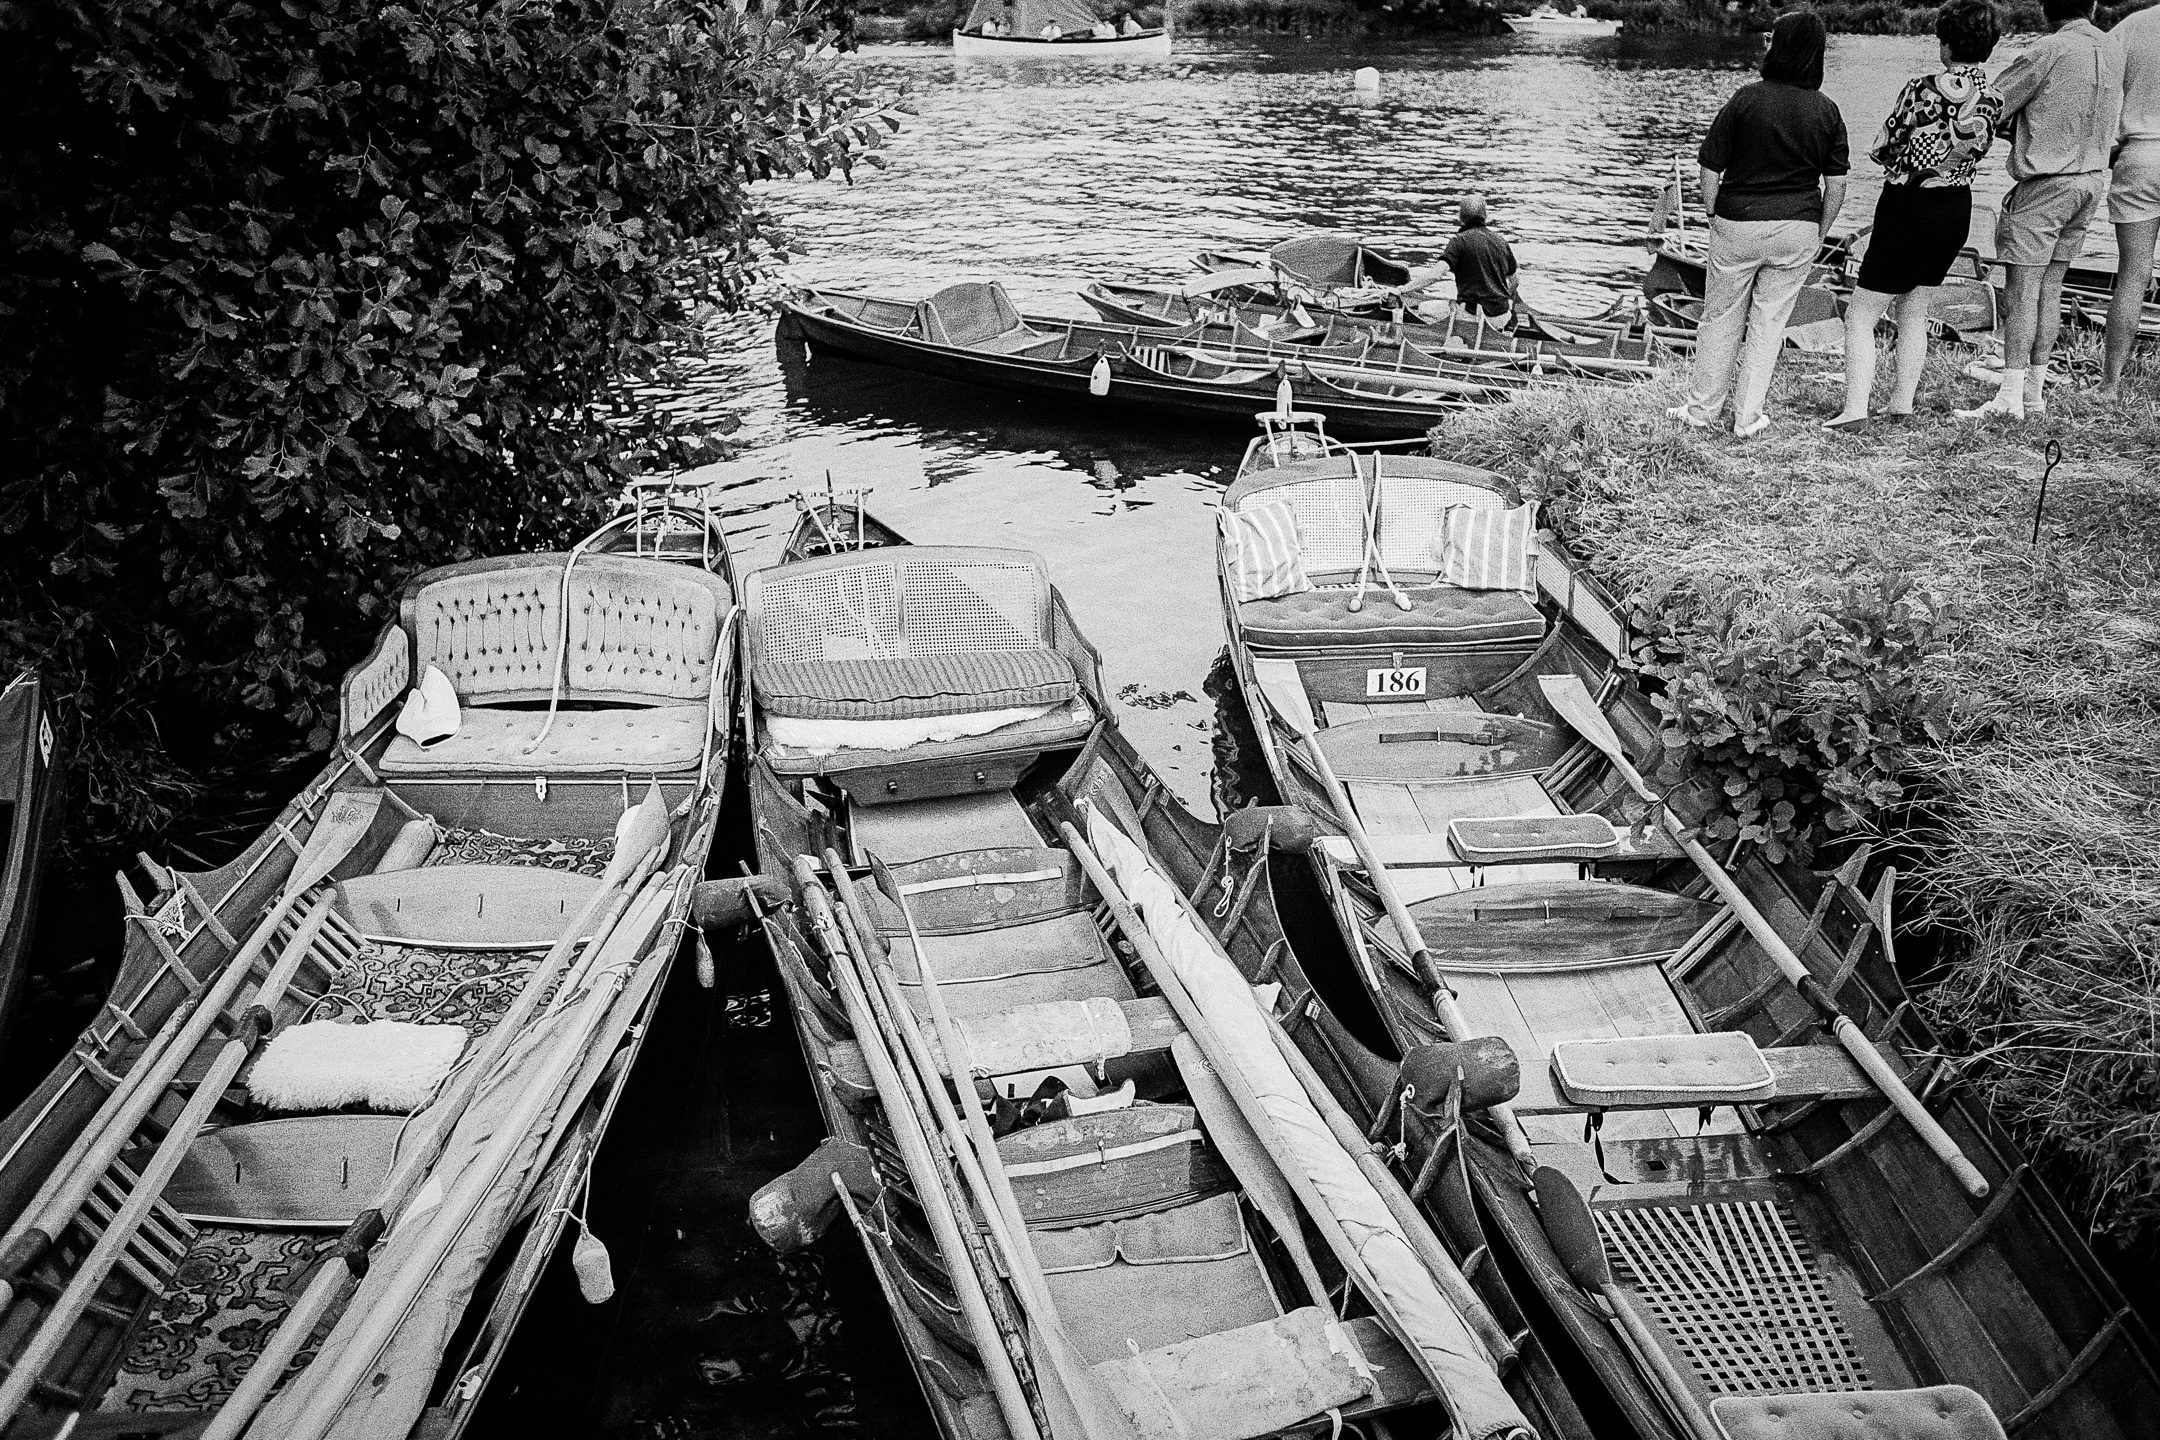 Boats on the River shot on HP5+ film and developed in ID11